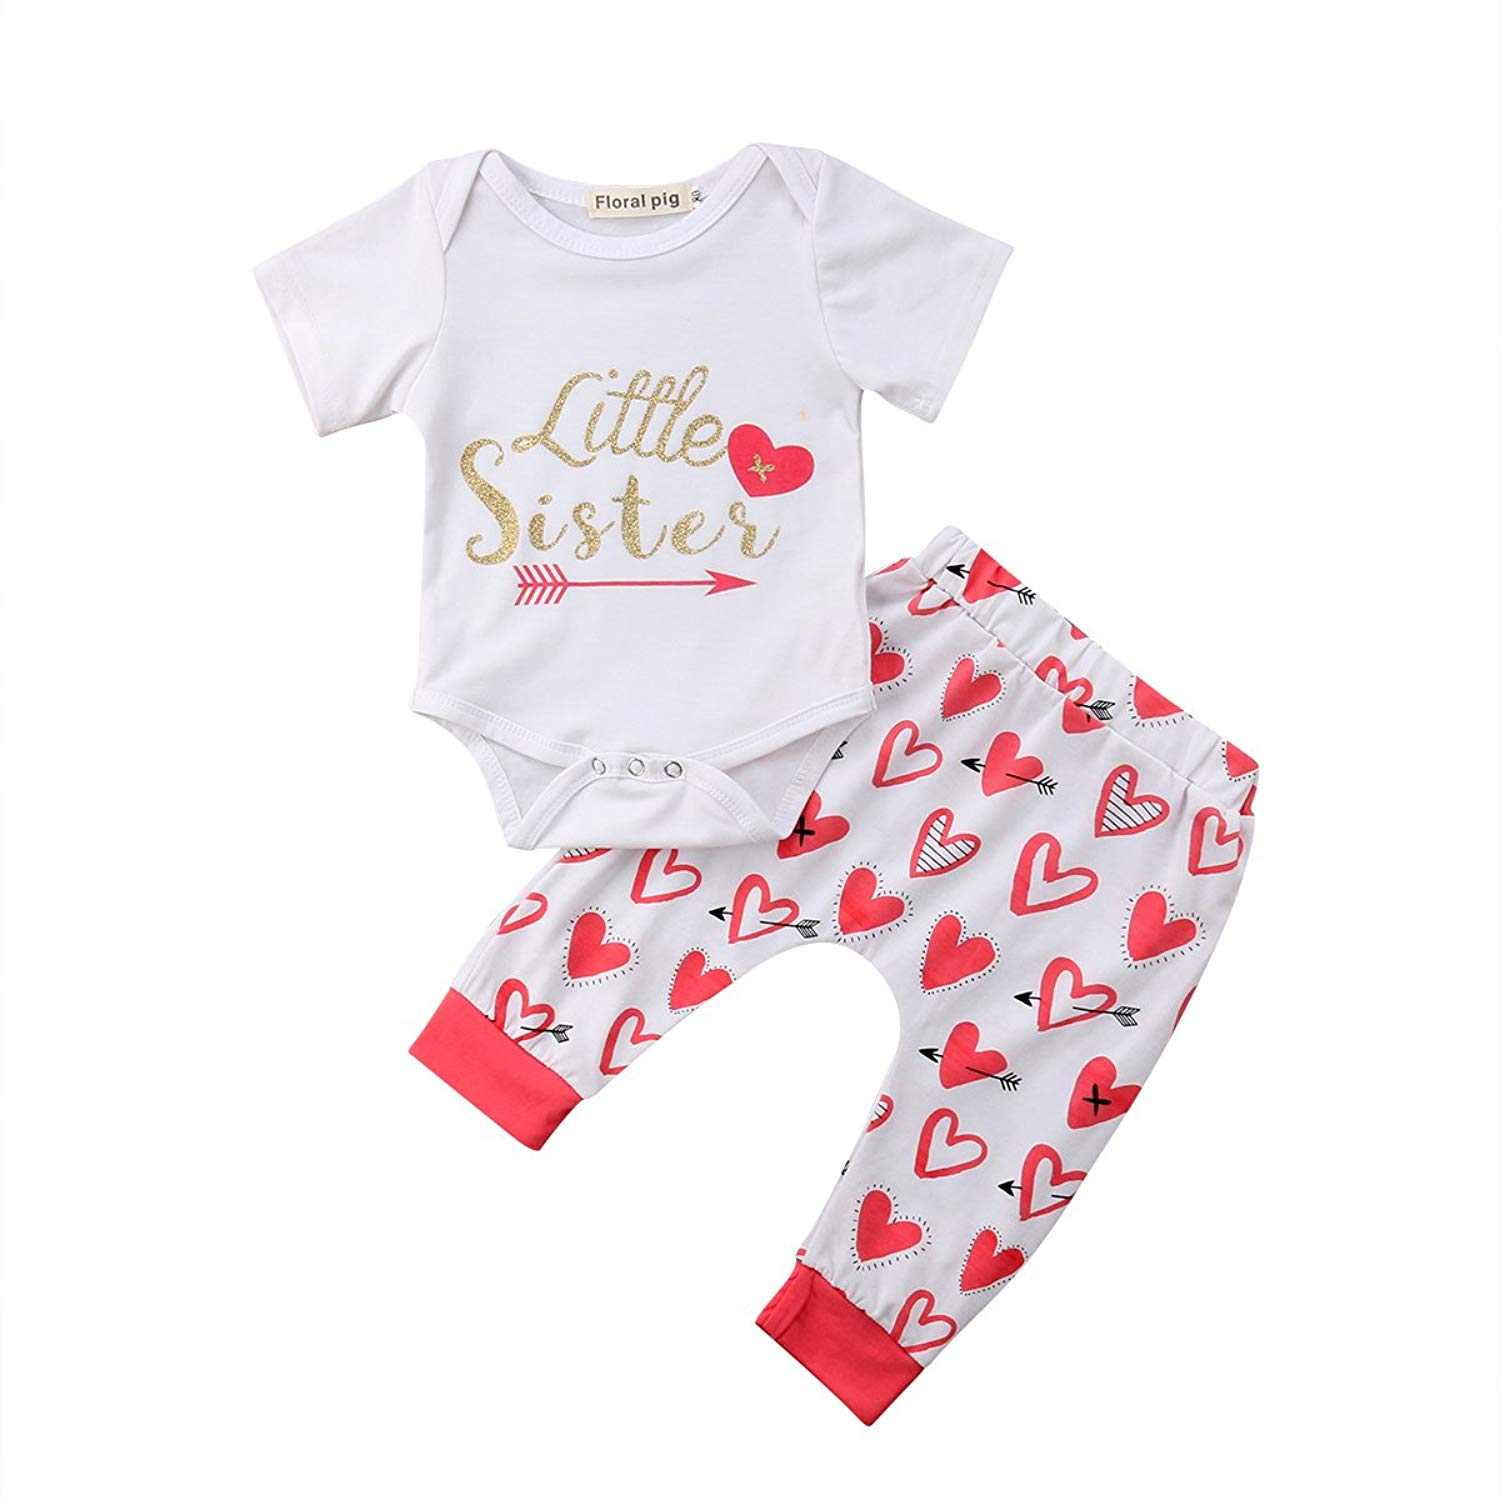 1a899c7f706 Get Quotations · Biayxms Baby Girls Little Sister Bodysuit Romper + Arrow  Heart Pants Clothes Outfits